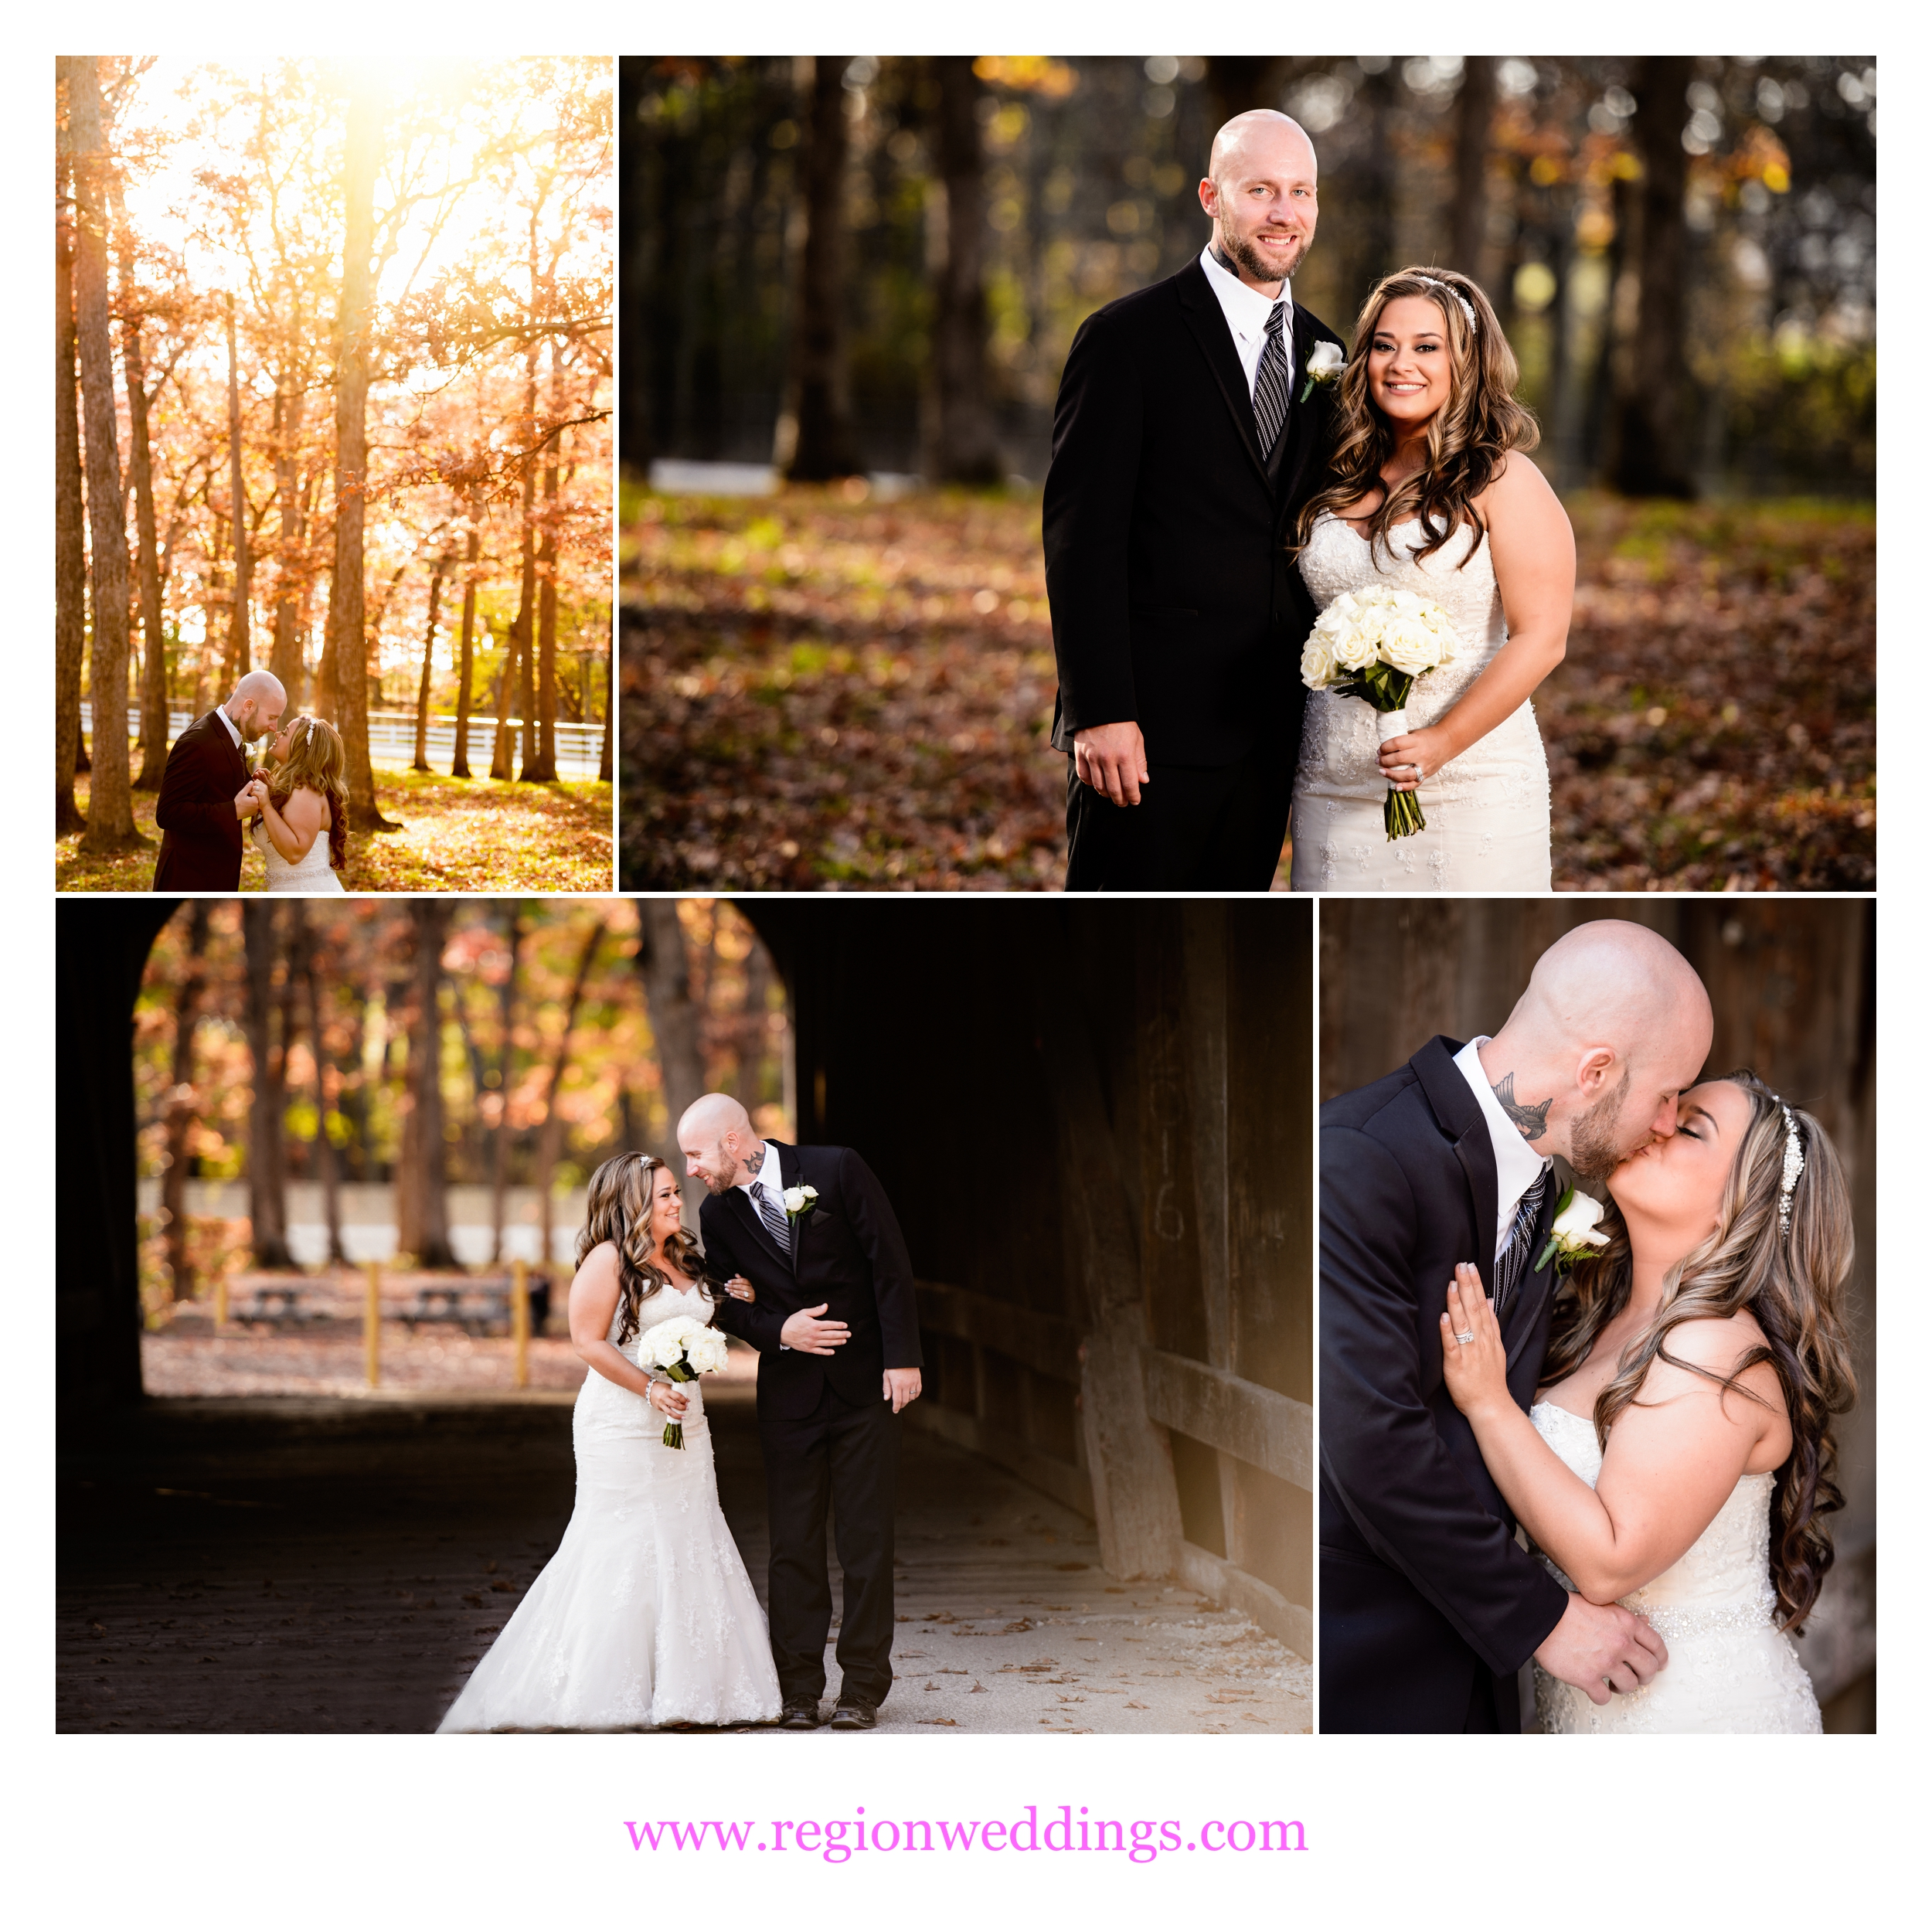 Romantic Fall wedding photos at Lake County Fairgrounds in Crown Point, Indiana.